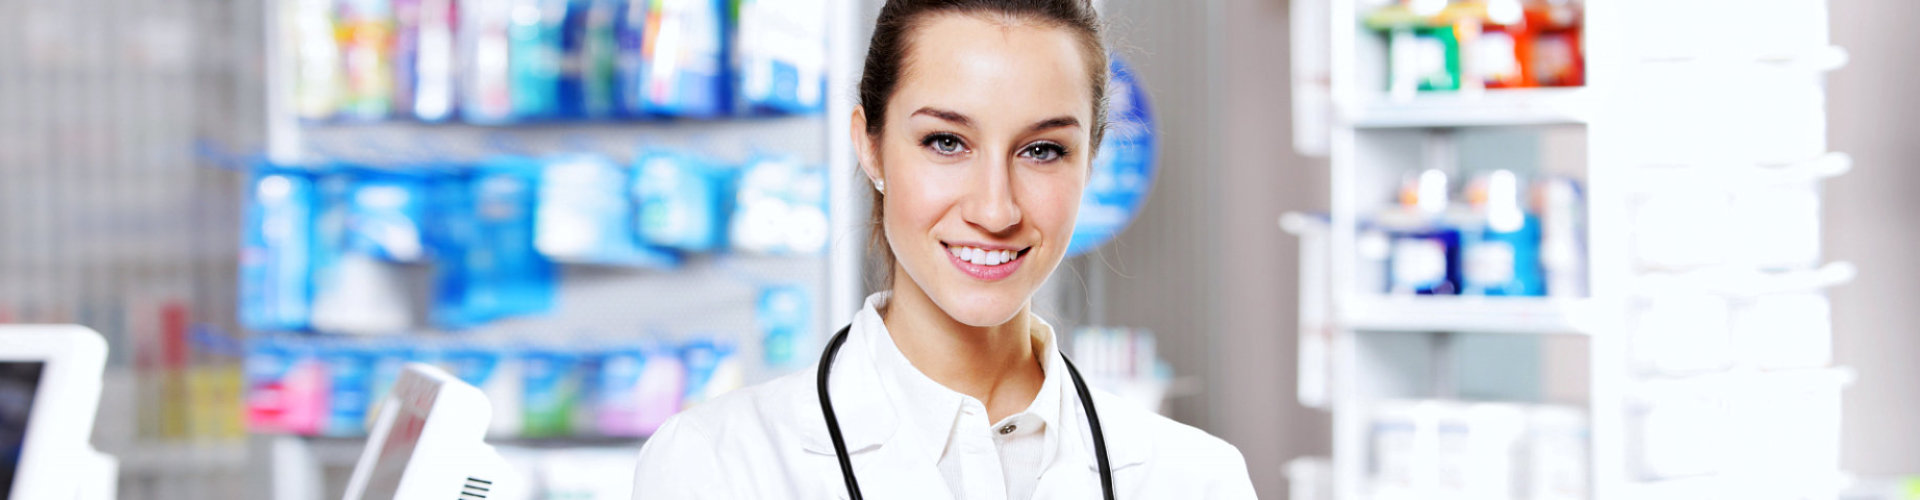 female pharmacist smiling